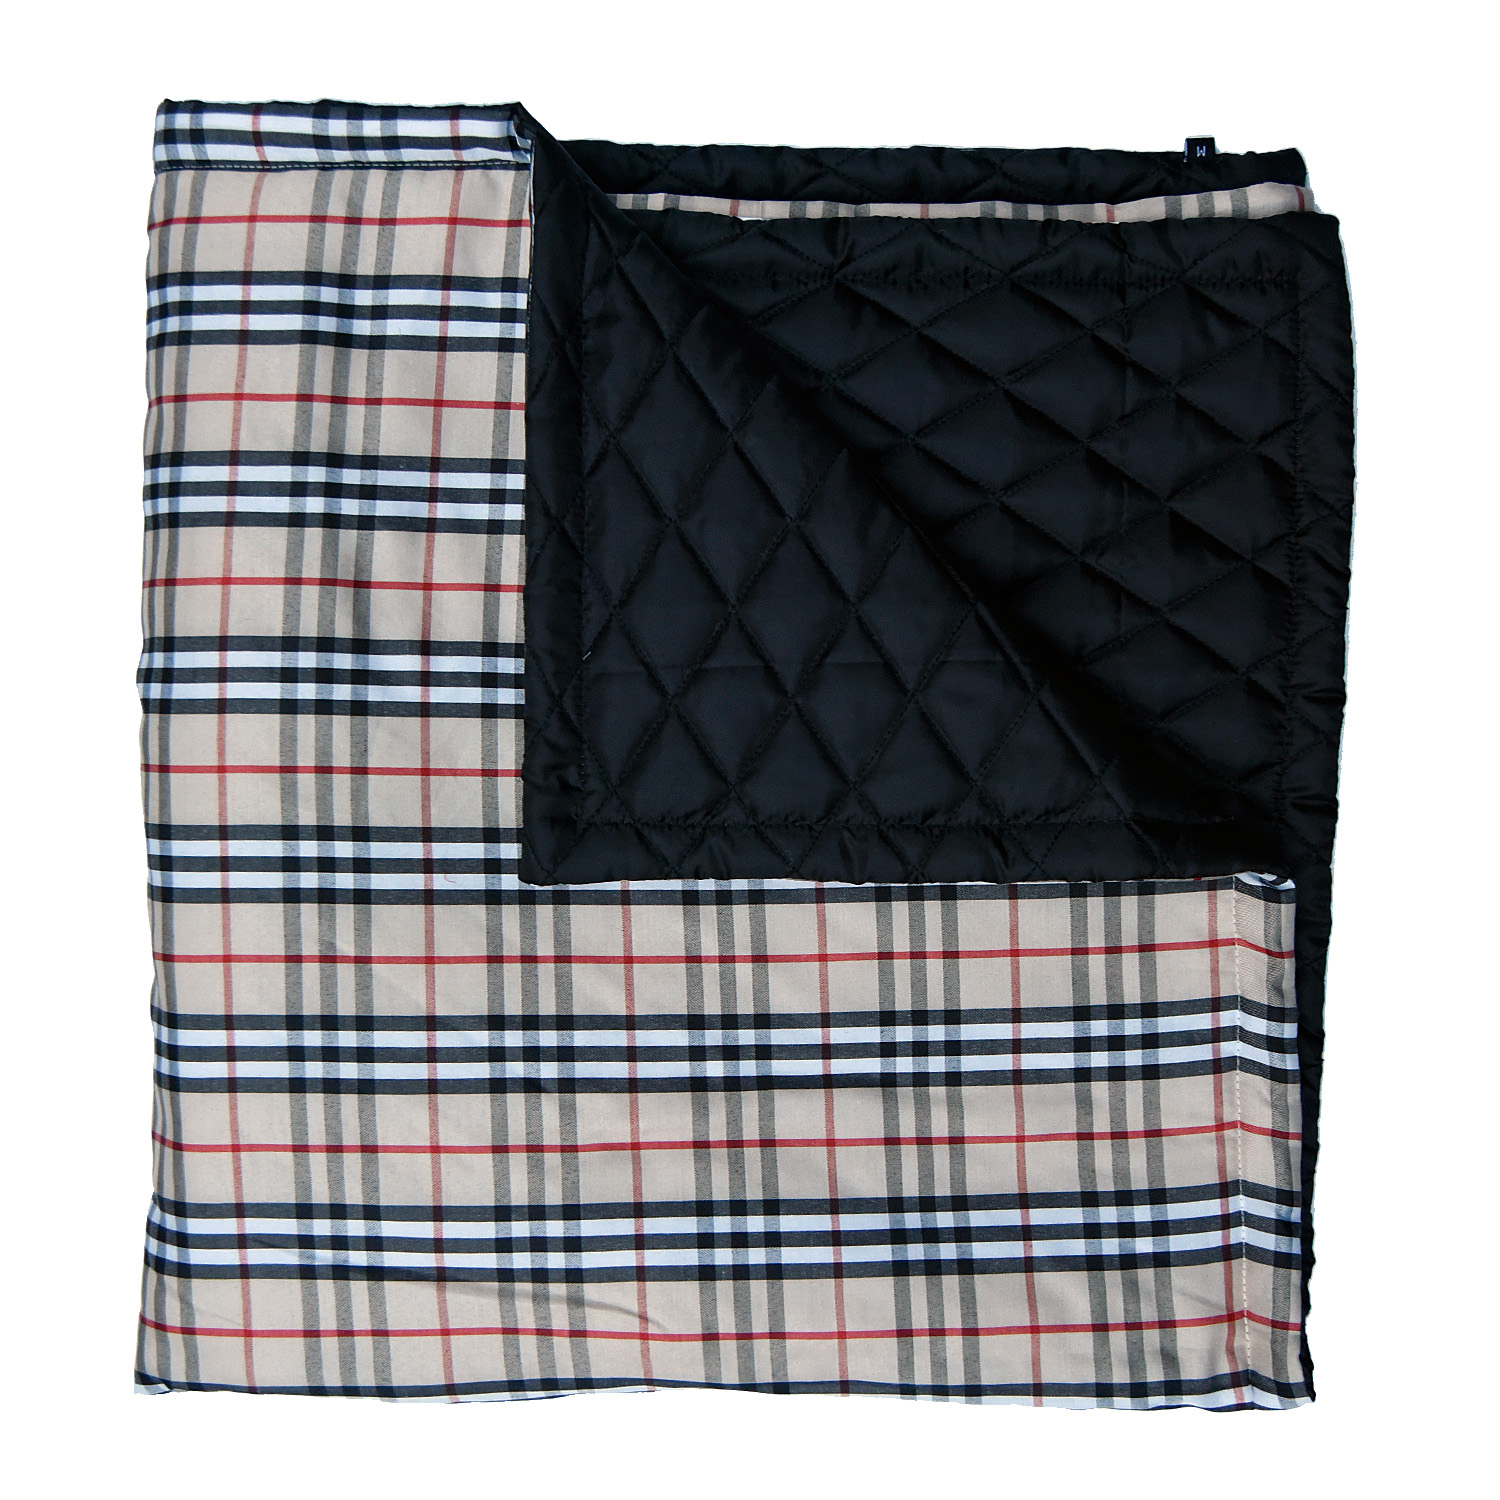 Mutt Of Course Pupberry Blanket Black  - Medium